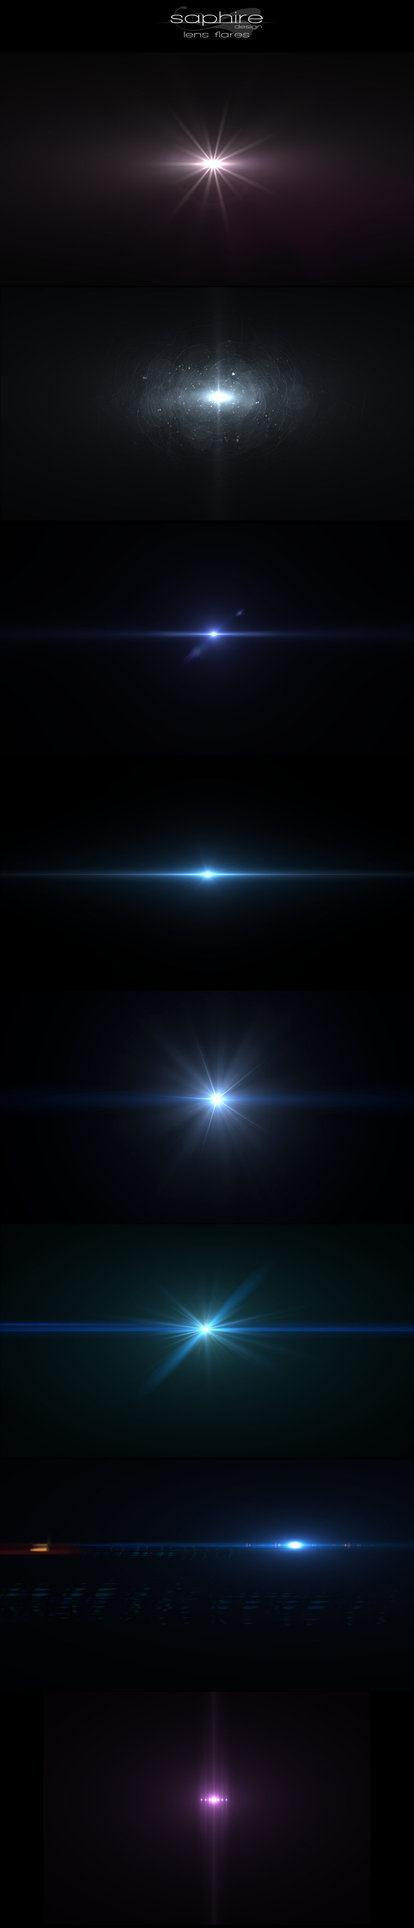 Lens Flare Photoshop Free Textures.